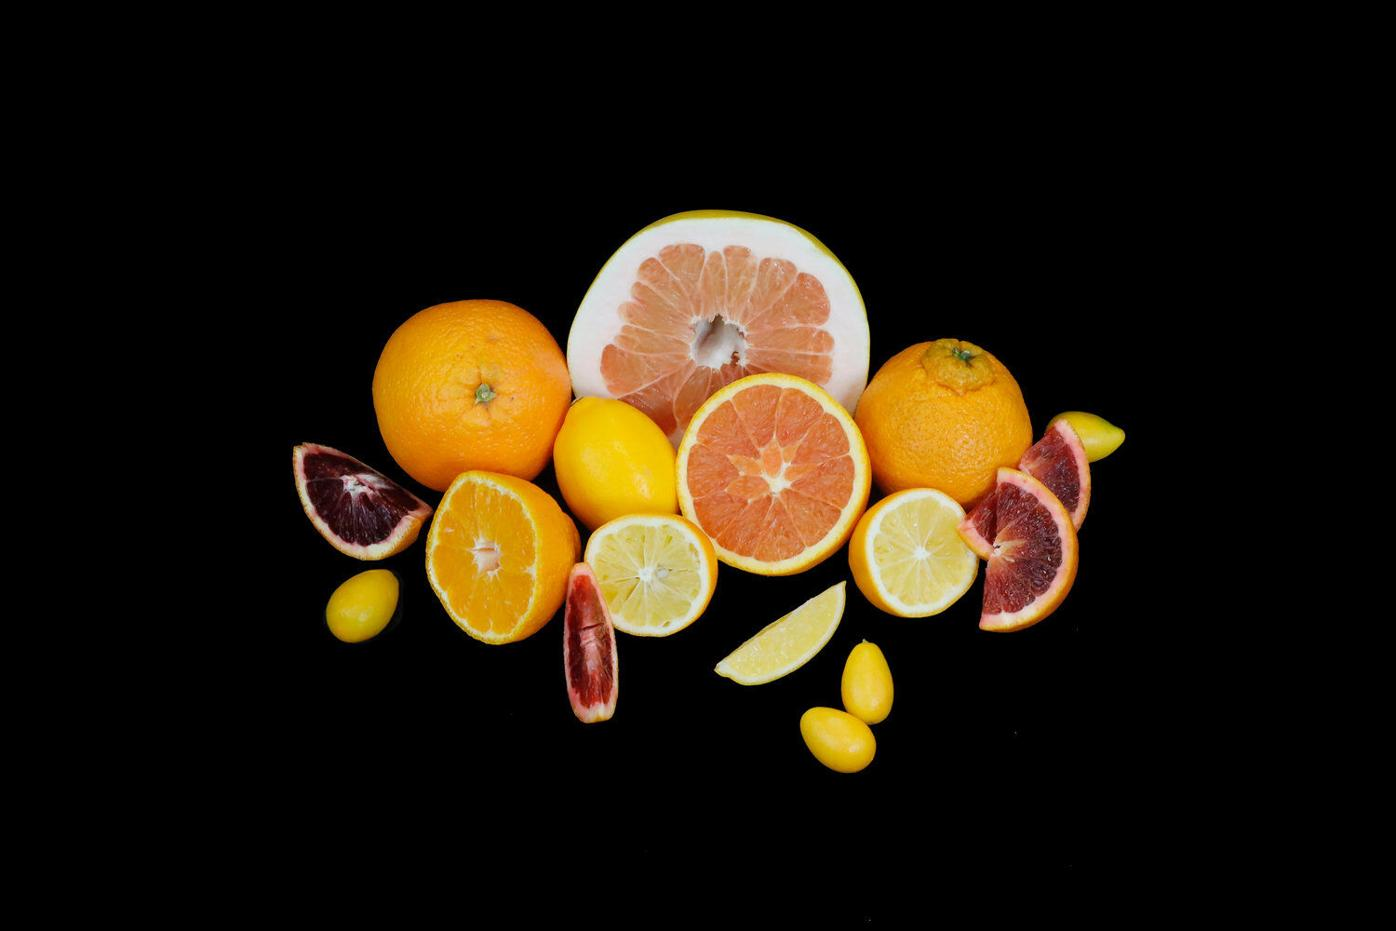 Citrus fruits: A bright spot in the produce aisle